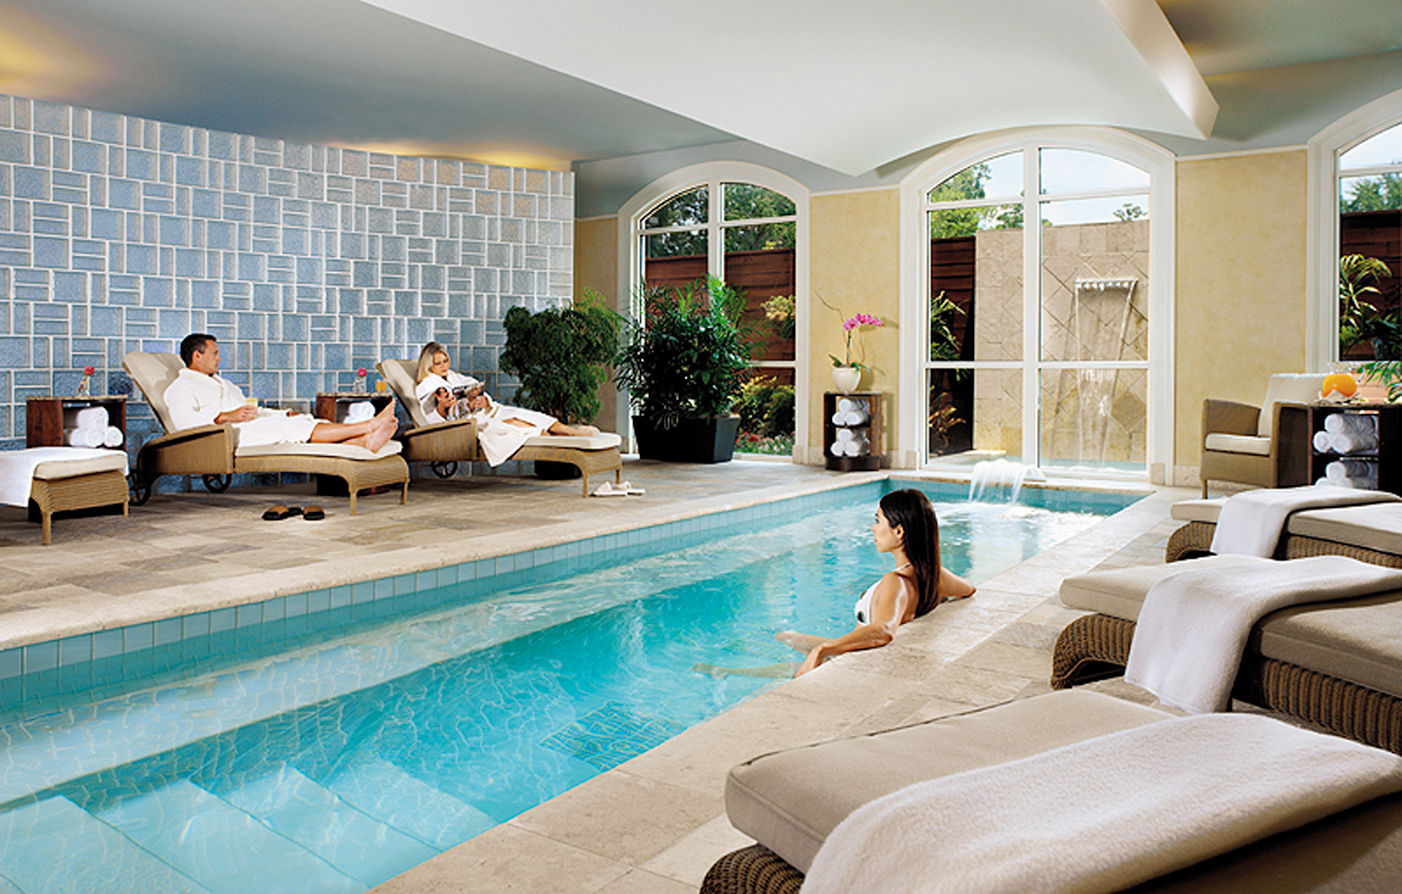 Things to do in houston texas the houstonian hotel club for Top spa resorts in texas